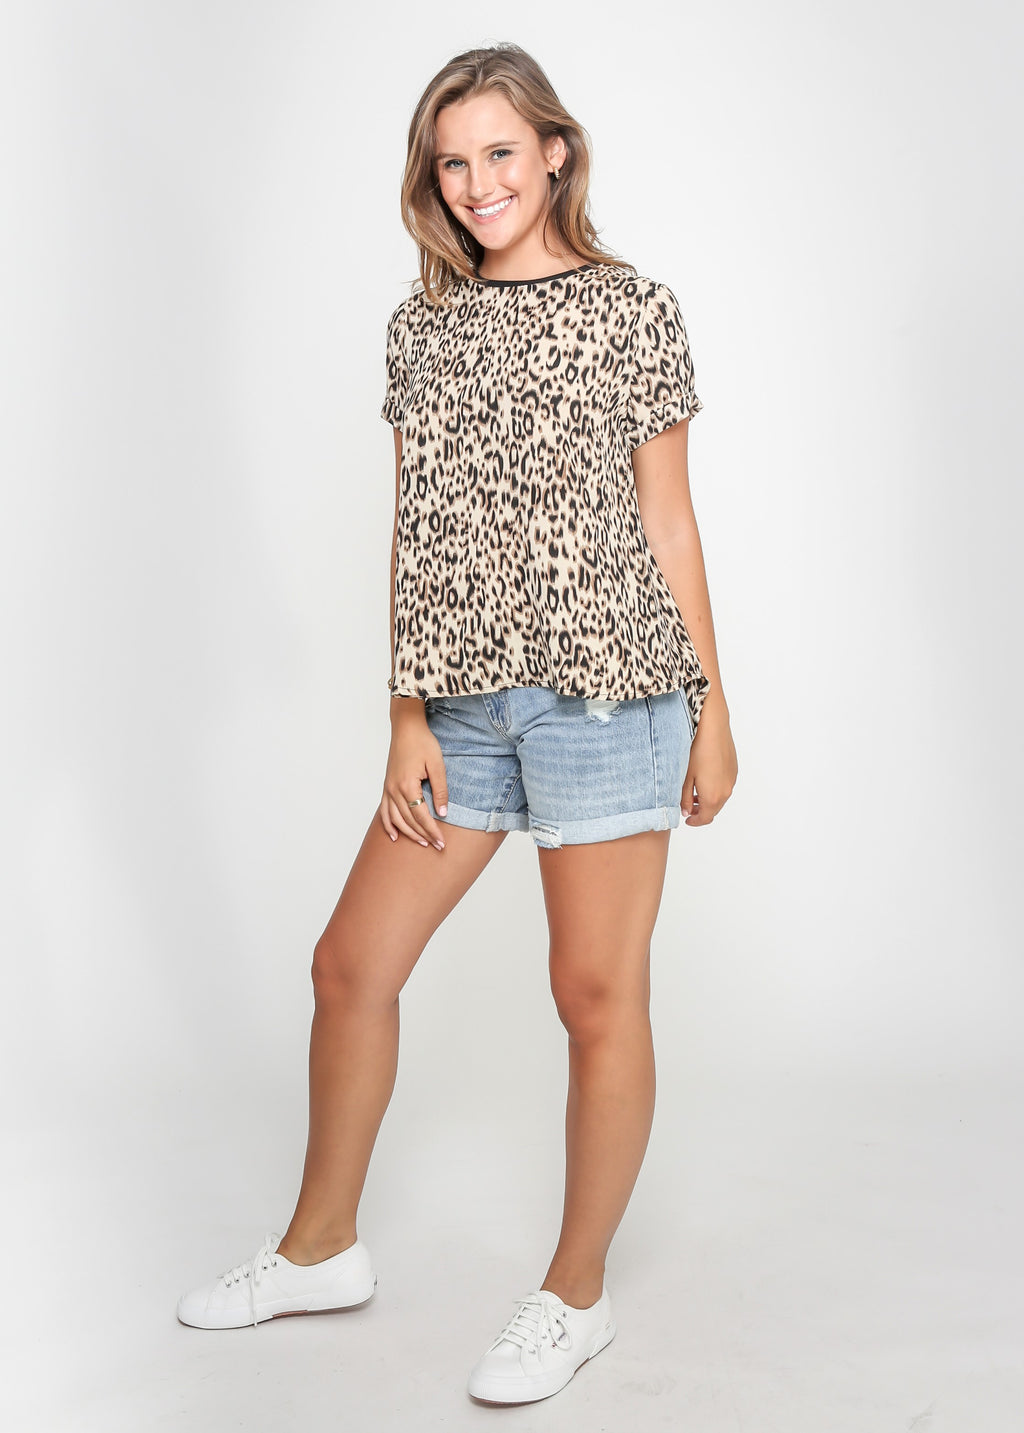 HARLOW TEE - BEIGE LEOPARD - MARK DOWN MADNESS